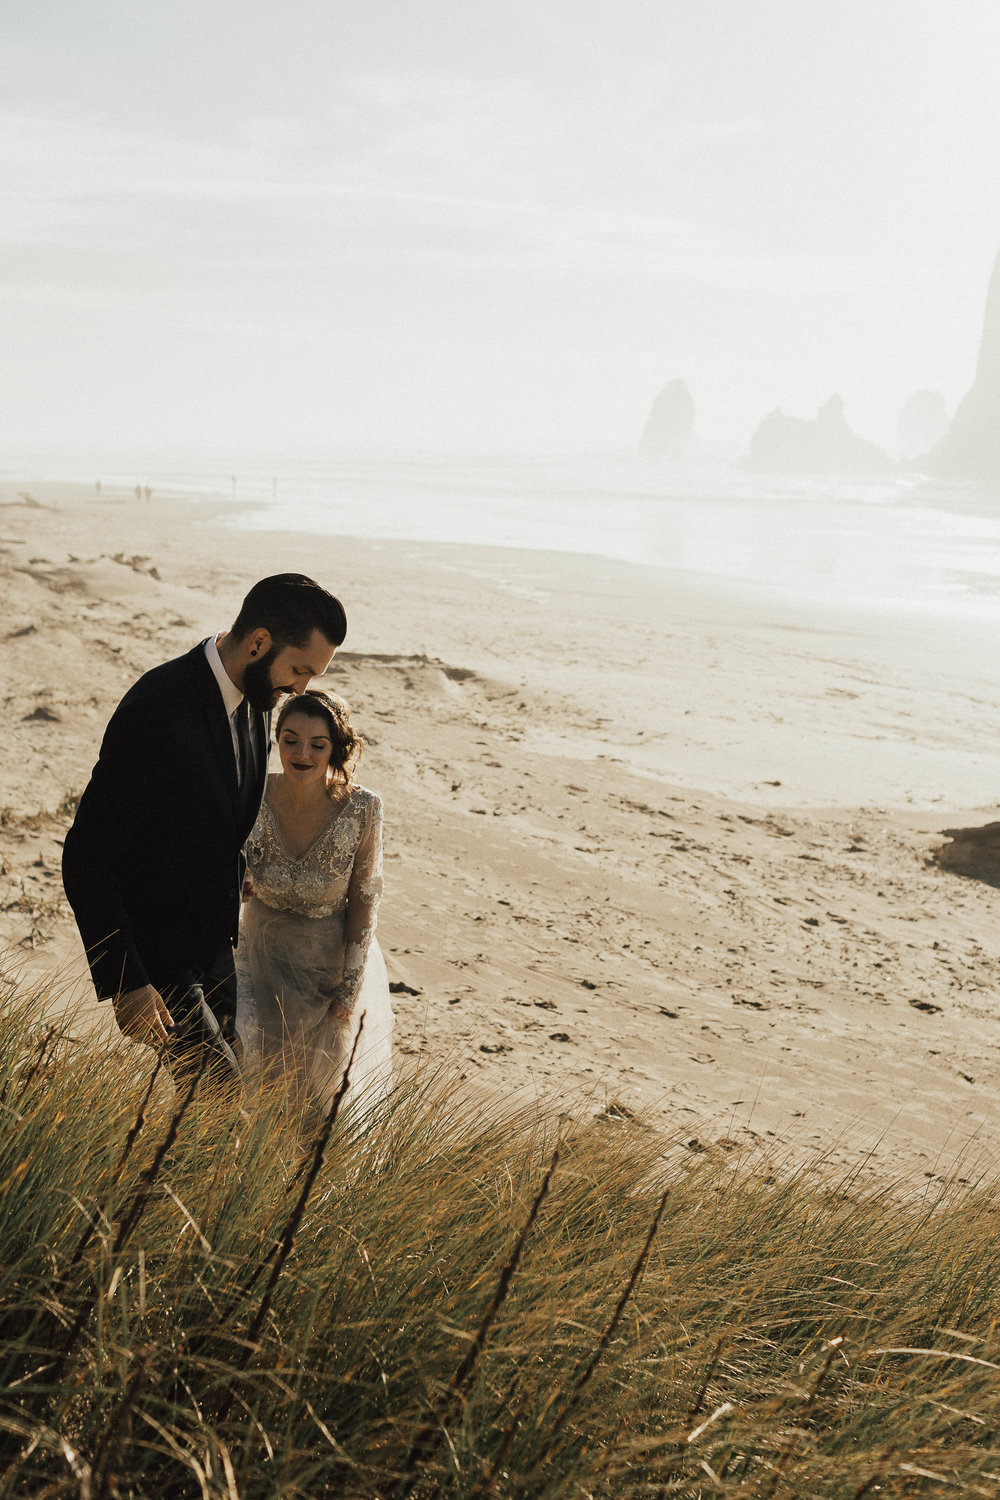 Cannon Beach Elopement - Michelle Larmand Photography - 068